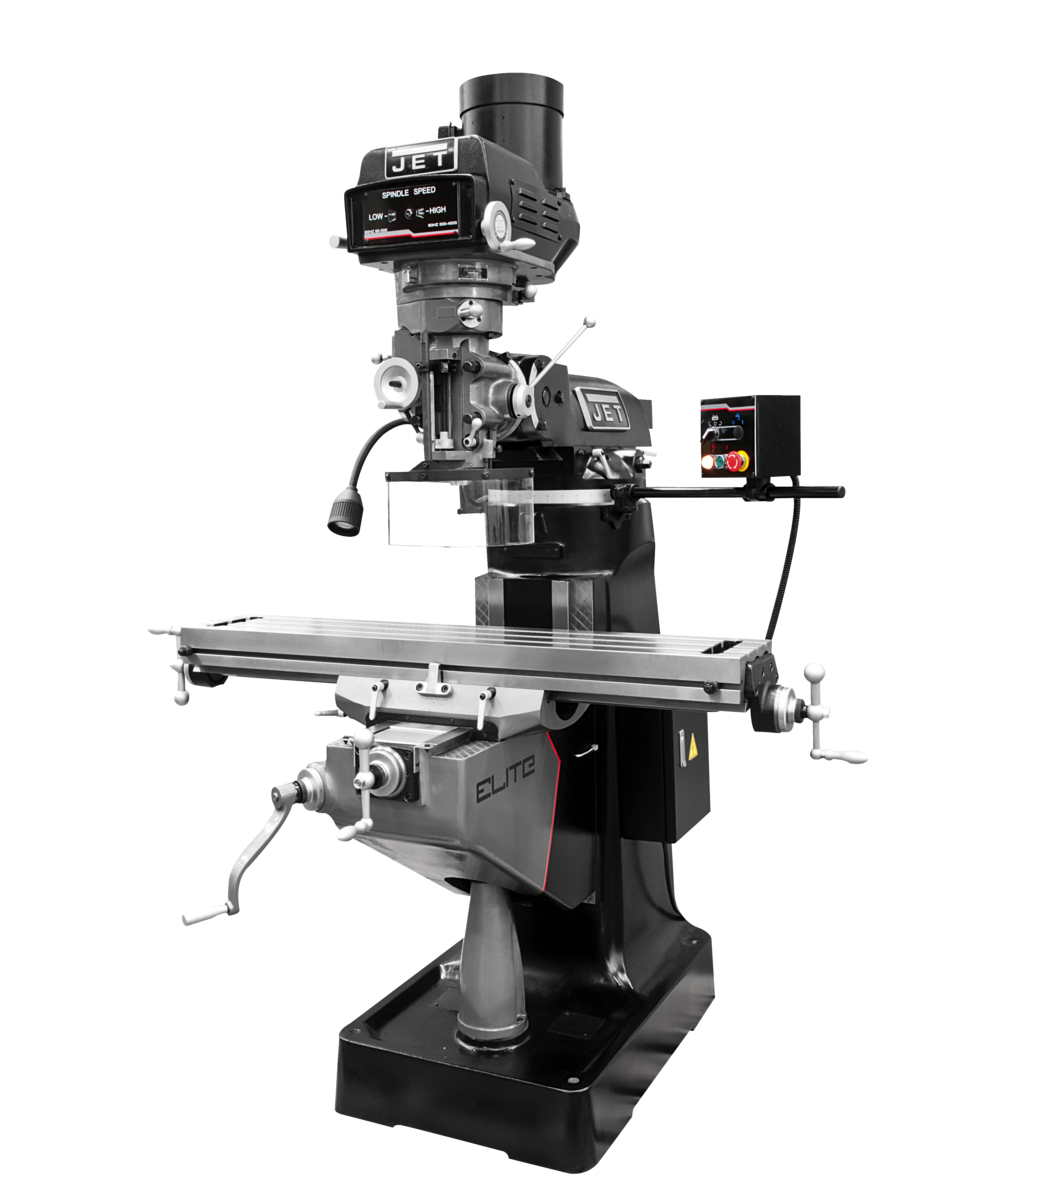 ETM-949 Mill with 3-Axis ACU-RITE 203 (Knee) DRO and Servo X, Y-Axis Powerfeeds and USA Air Powered Draw Bar